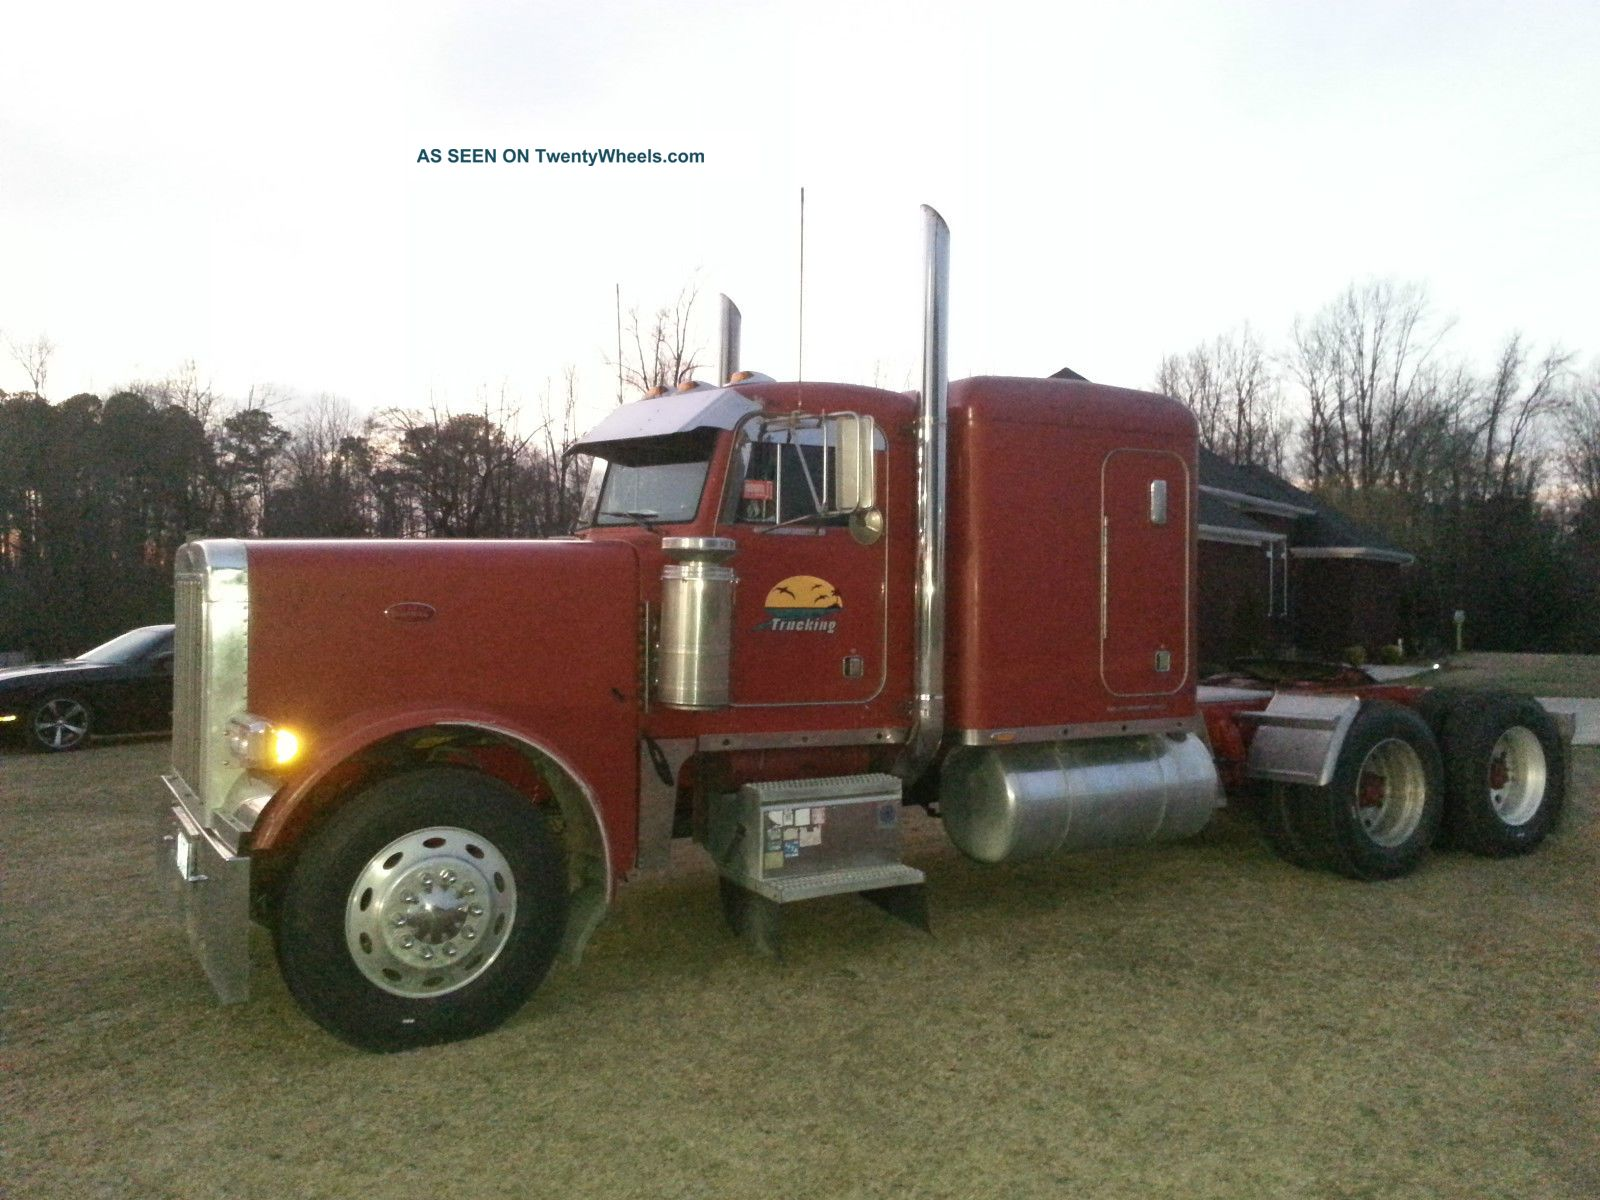 Peterbilt 379 Long Trailer Truck Coloring Page in addition 390 Unlock Tuning Truck further Watch as well Buyuk Tir Boyama Sayfasi further Trucka International Prostar Tractor W Dry Goods Trailer 21243. on peterbilt dump trailers